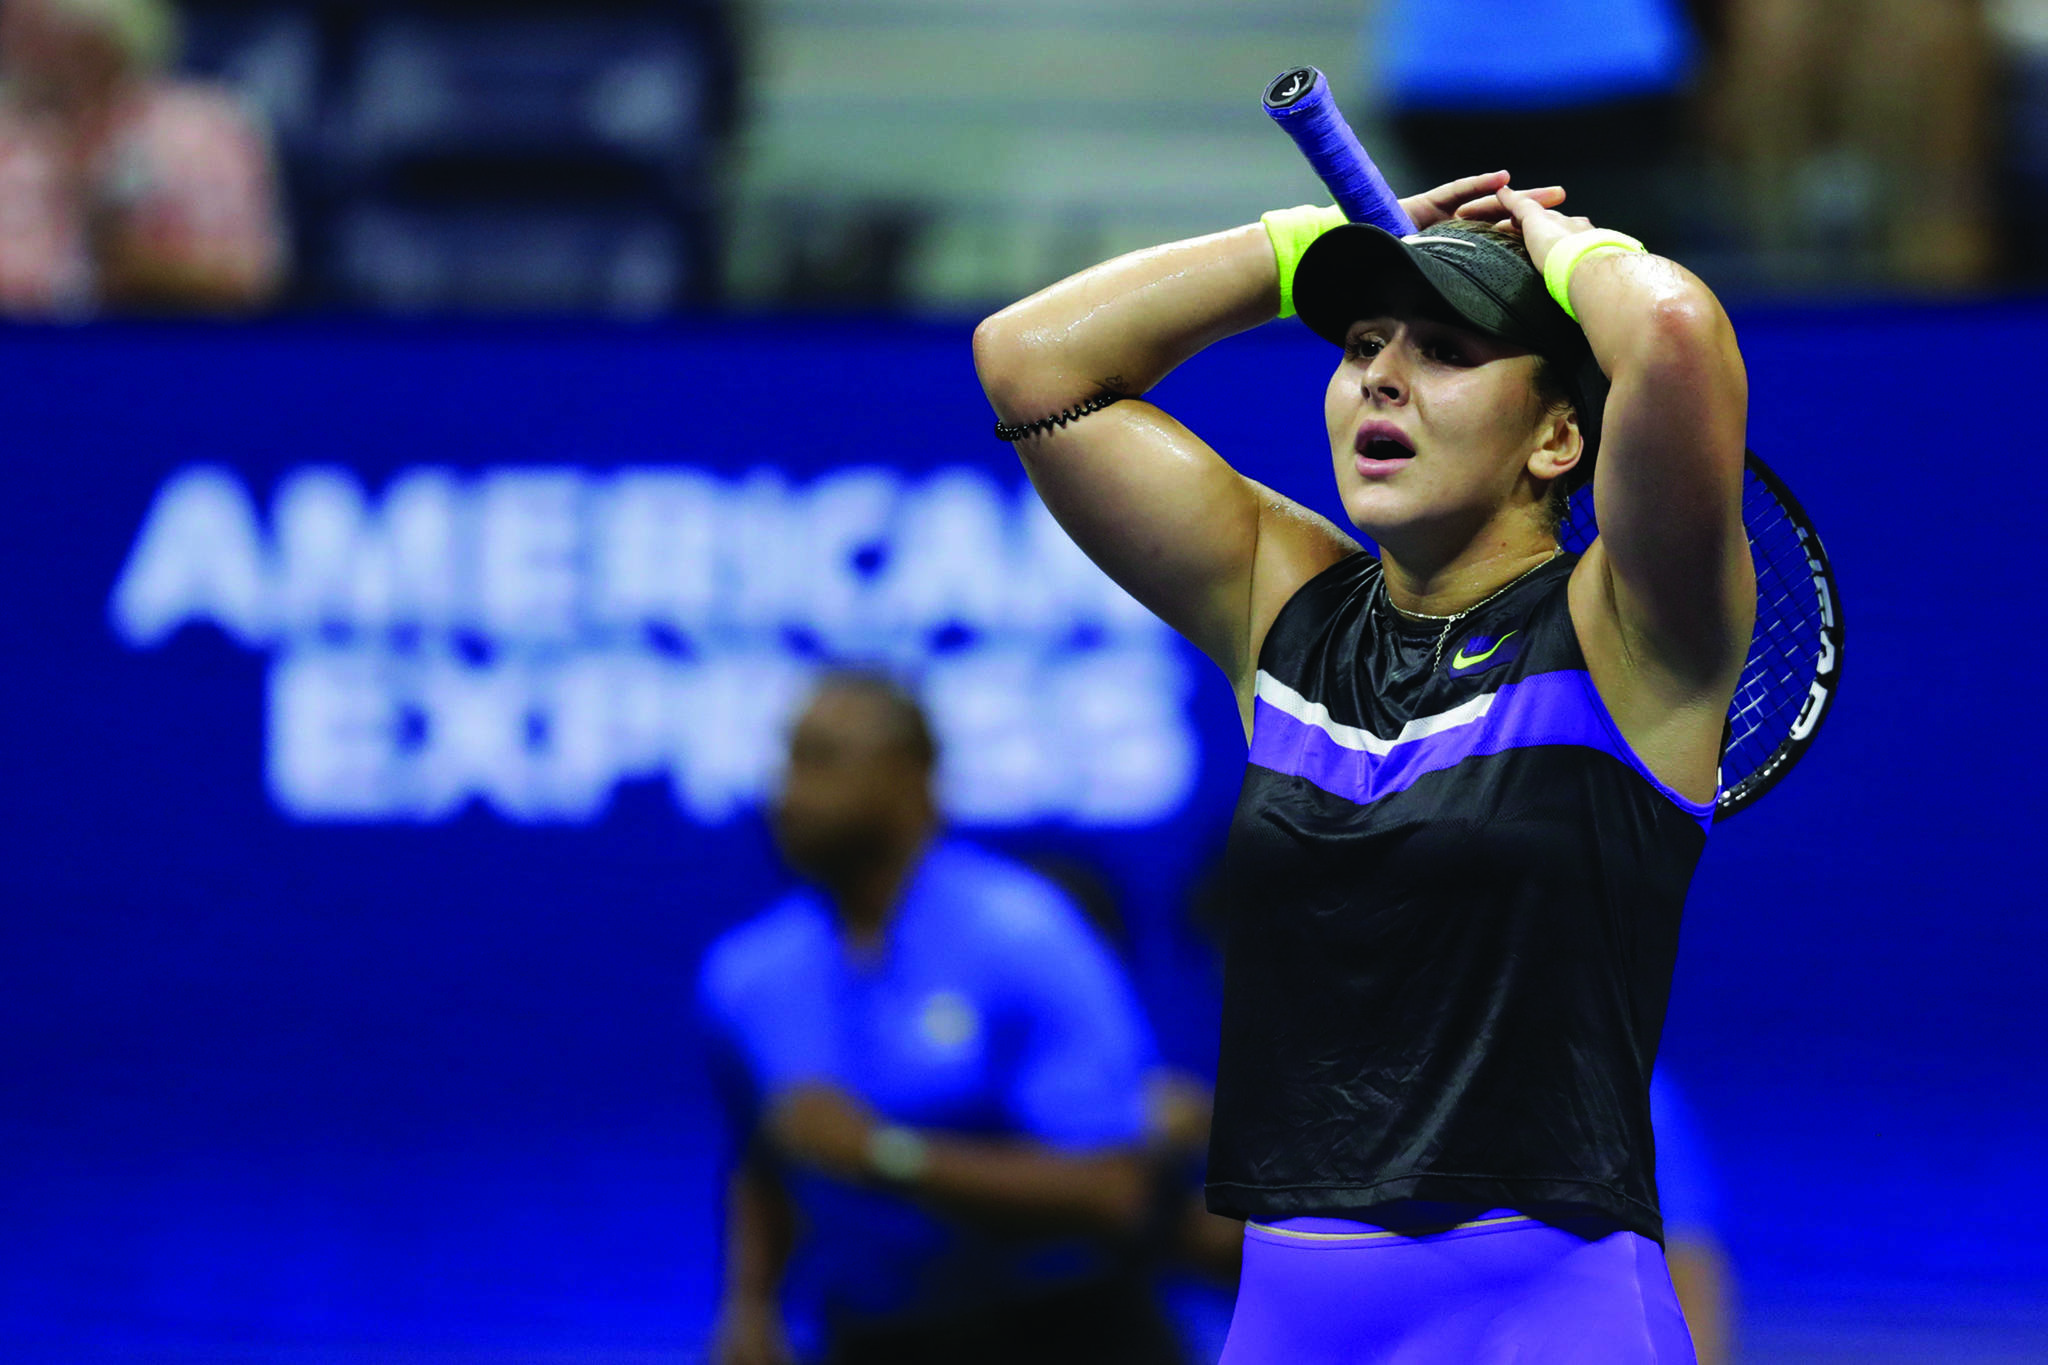 Bianca Andreescu, of Canada, reacts after defeating Belinda Bencic, of Switzerland, during the semifinals of the U.S. Open tennis championships Thursday, Sept. 5, 2019, in New York. (AP Photo/Adam Hunger)